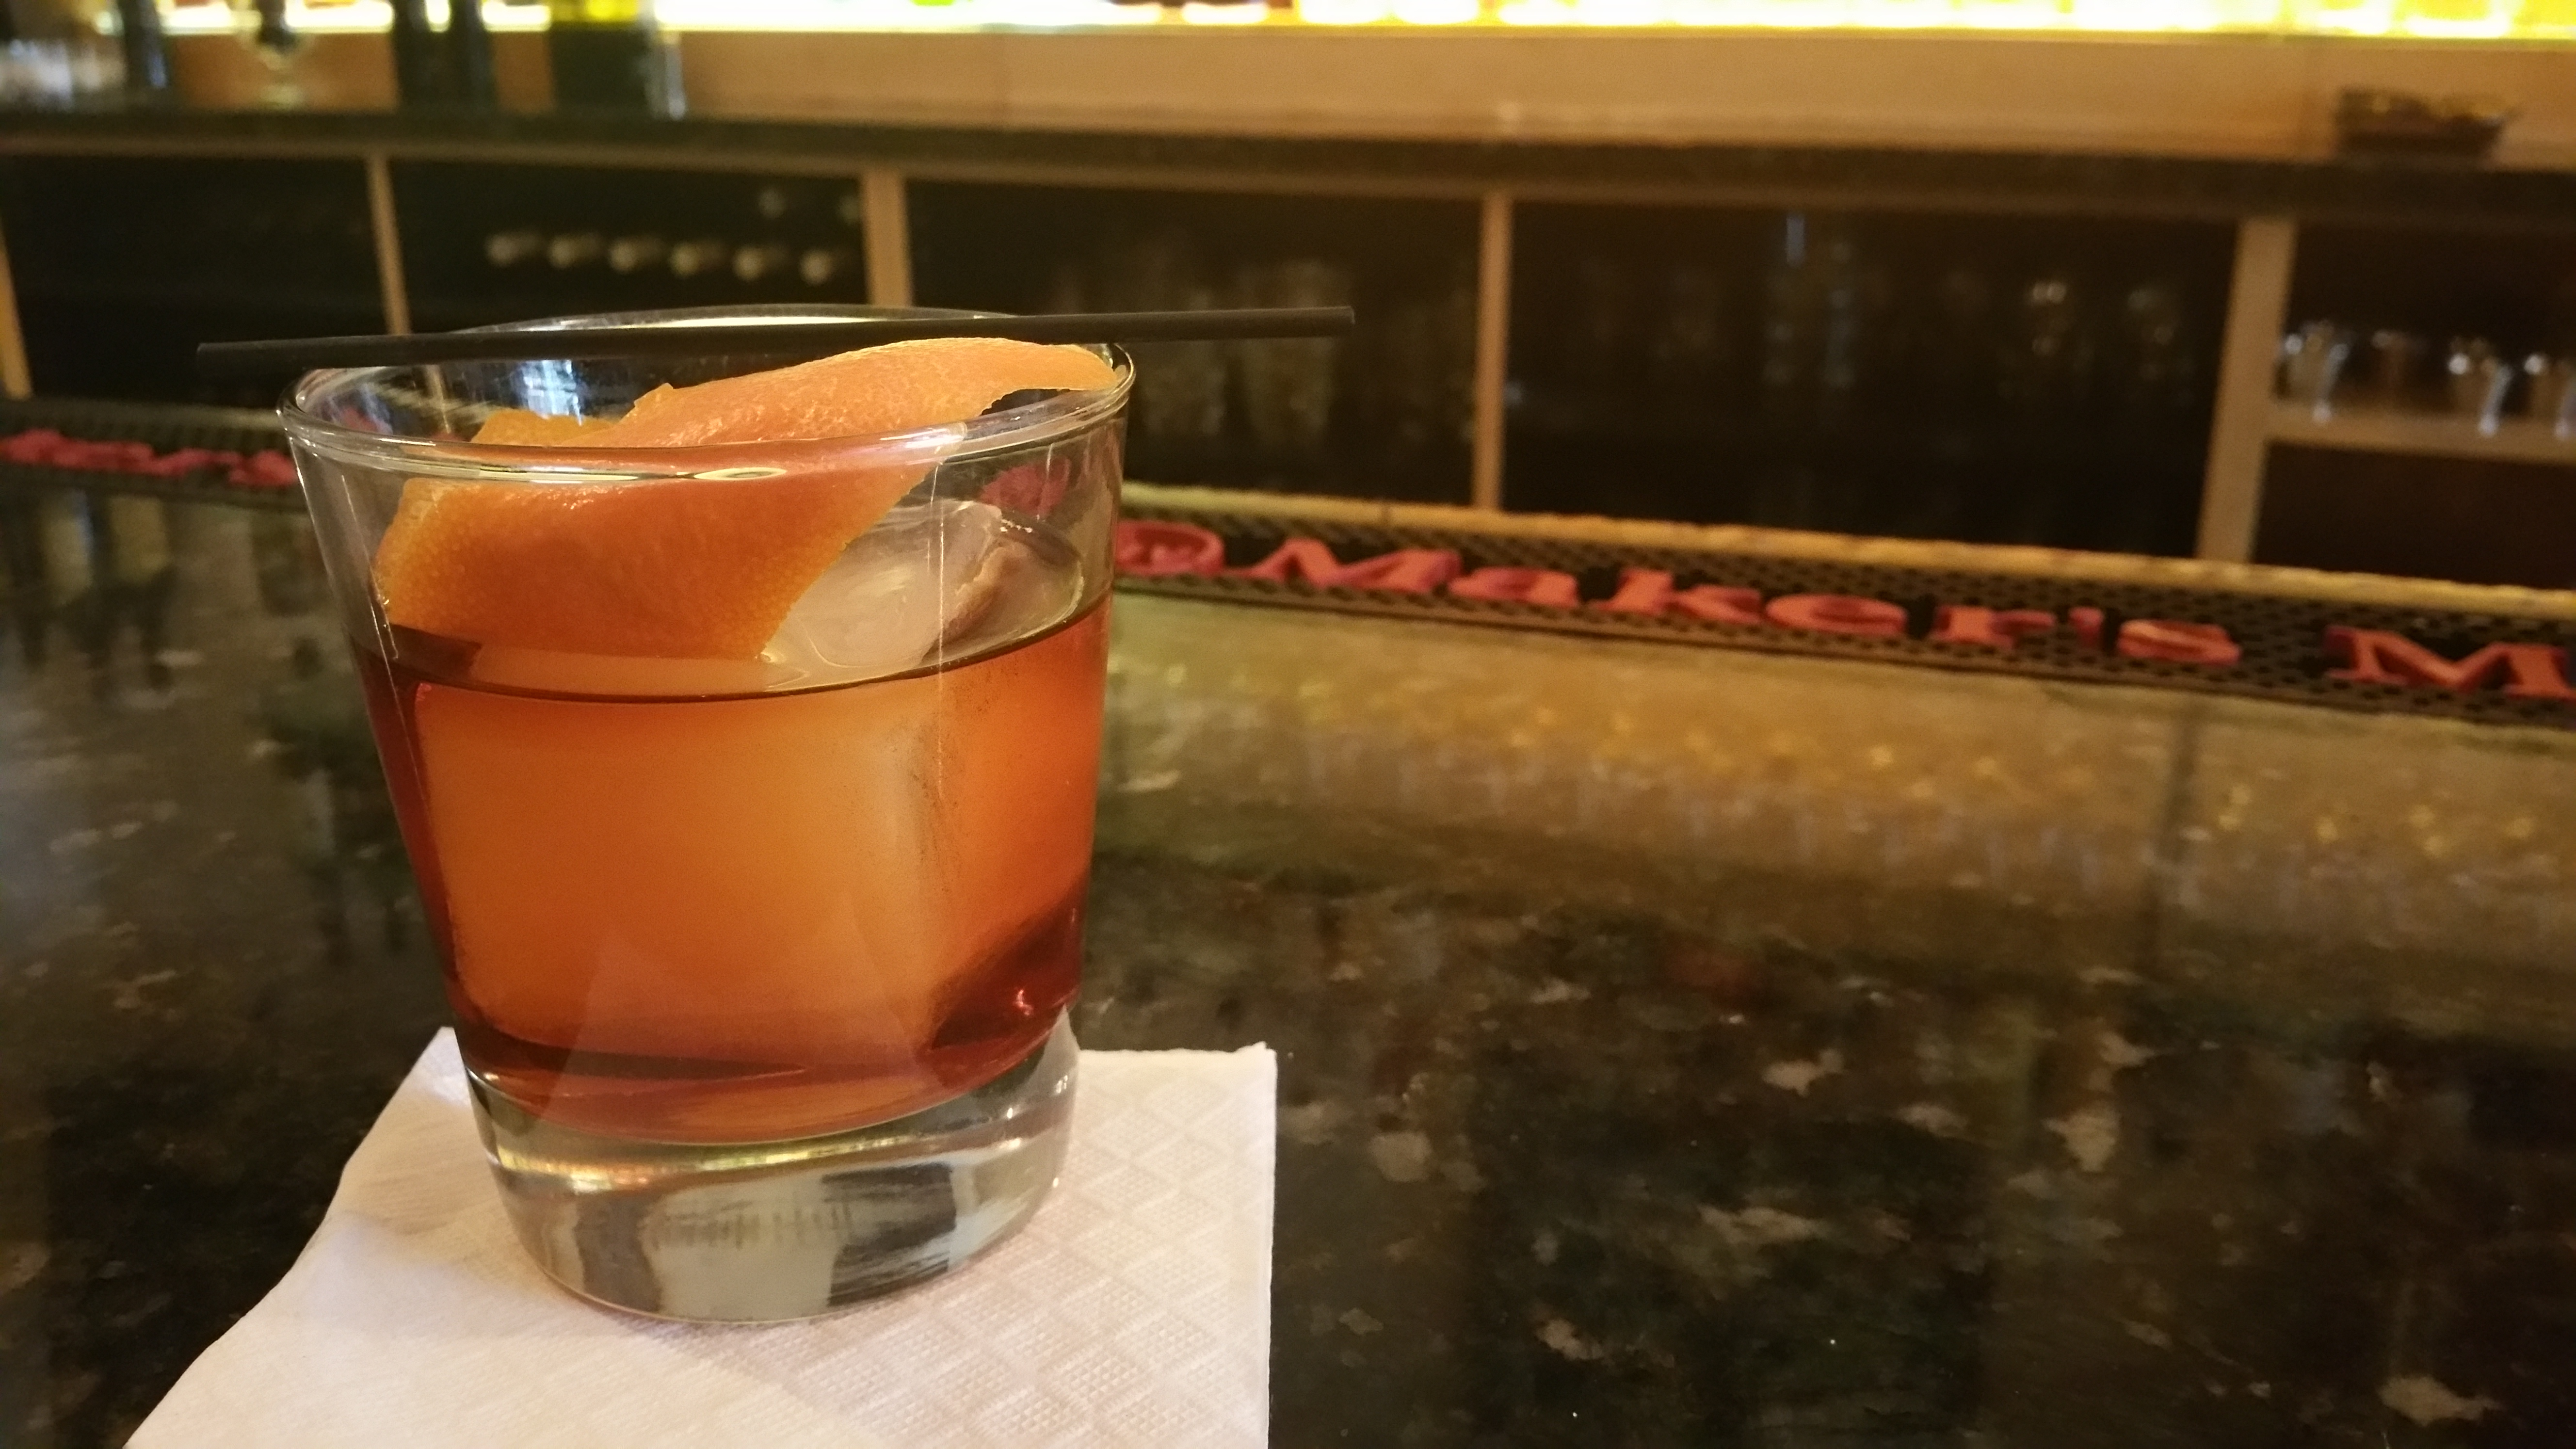 New Orleans Cocktail (Vieux Carré)